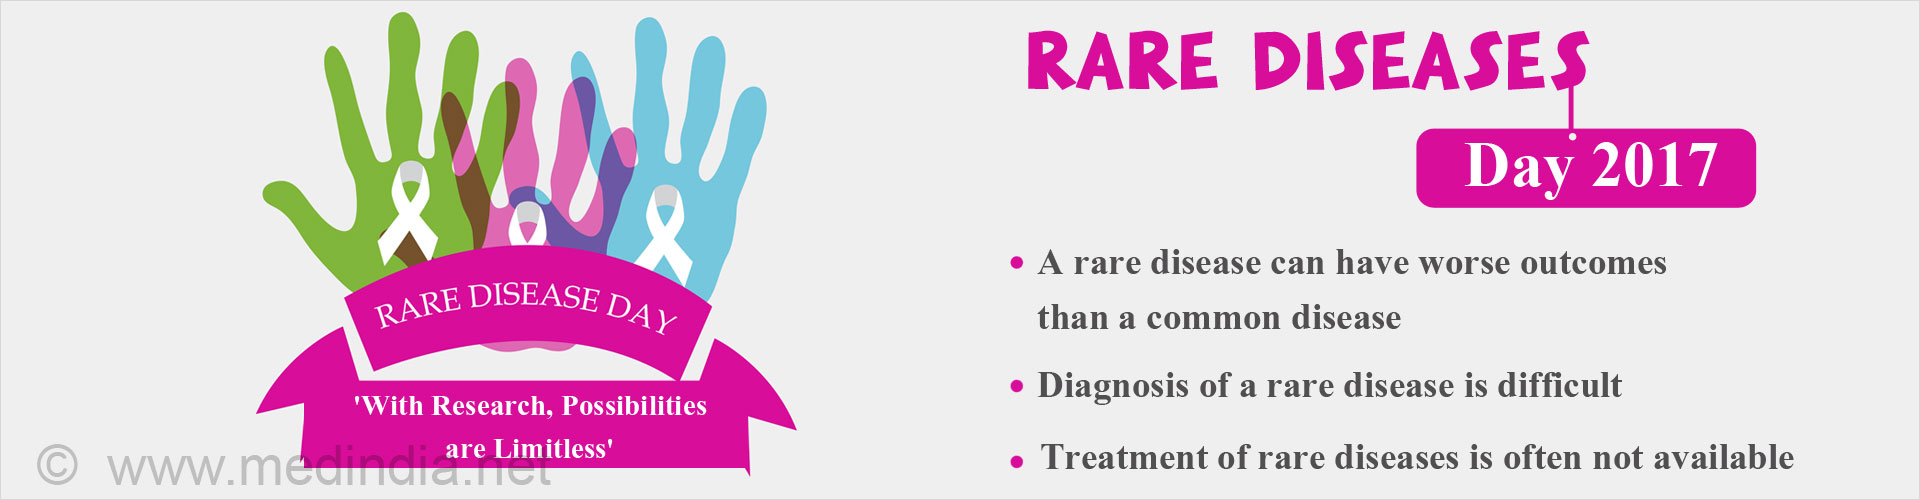 World Rare Disease Day 2017